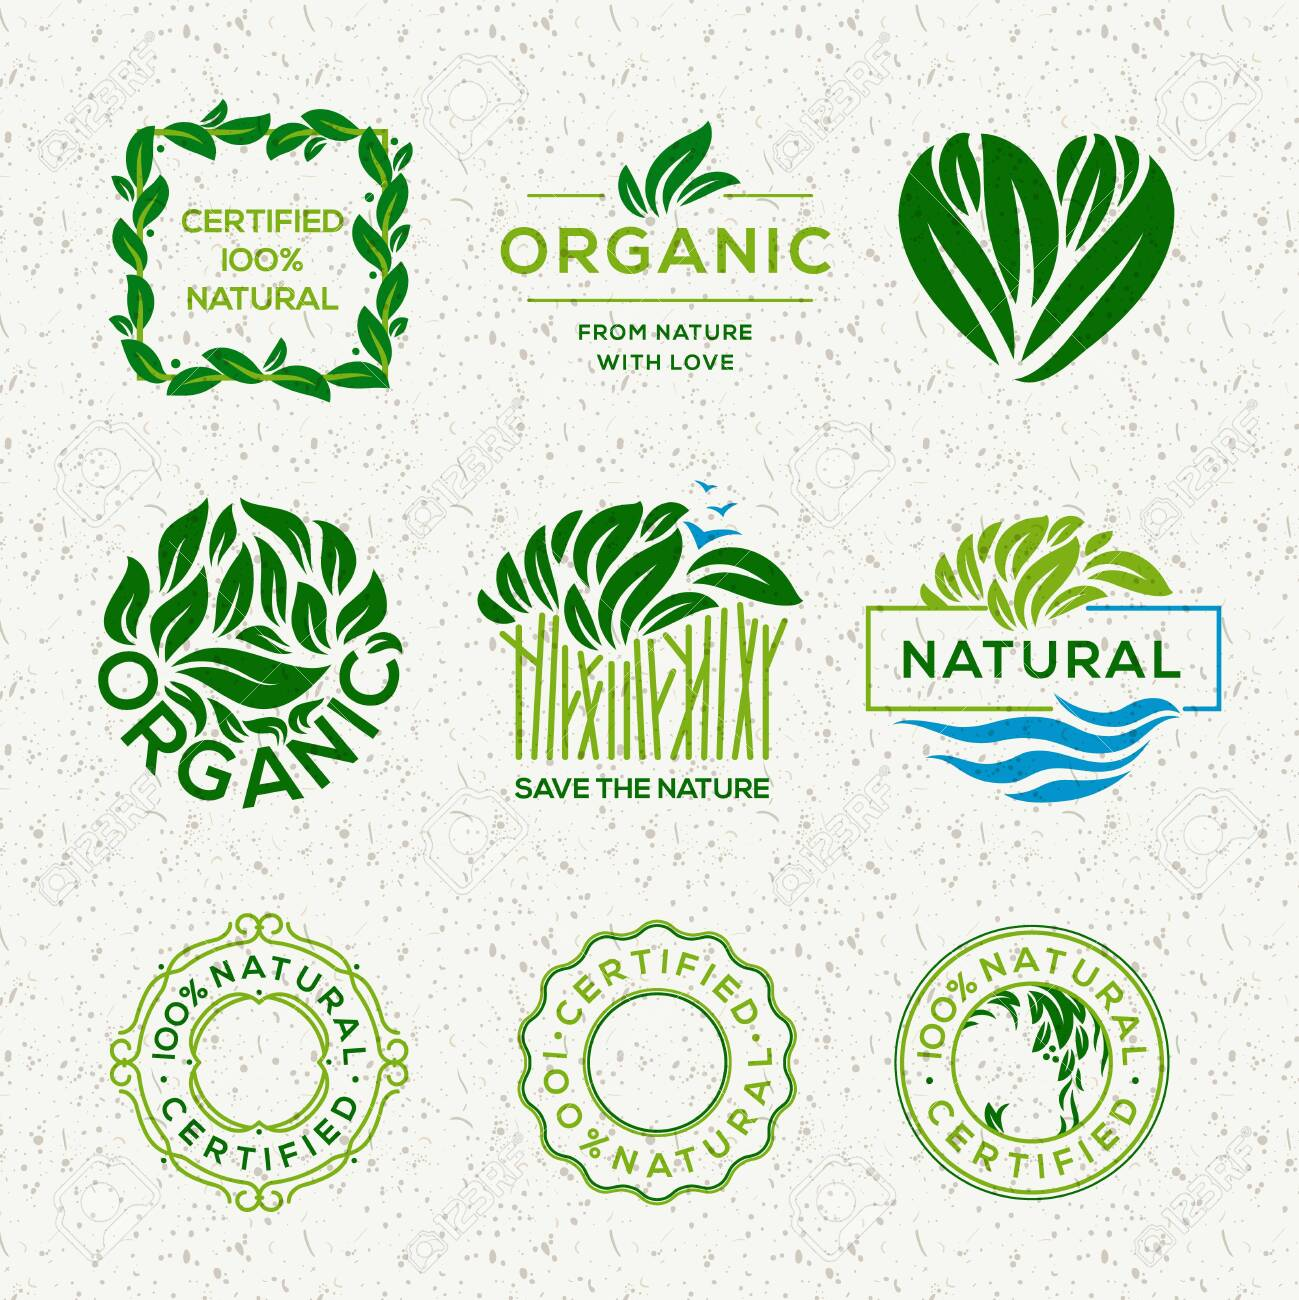 Organic food labels and elements, set for food and drink, restaurants and organic products vector illustration. - 120766316